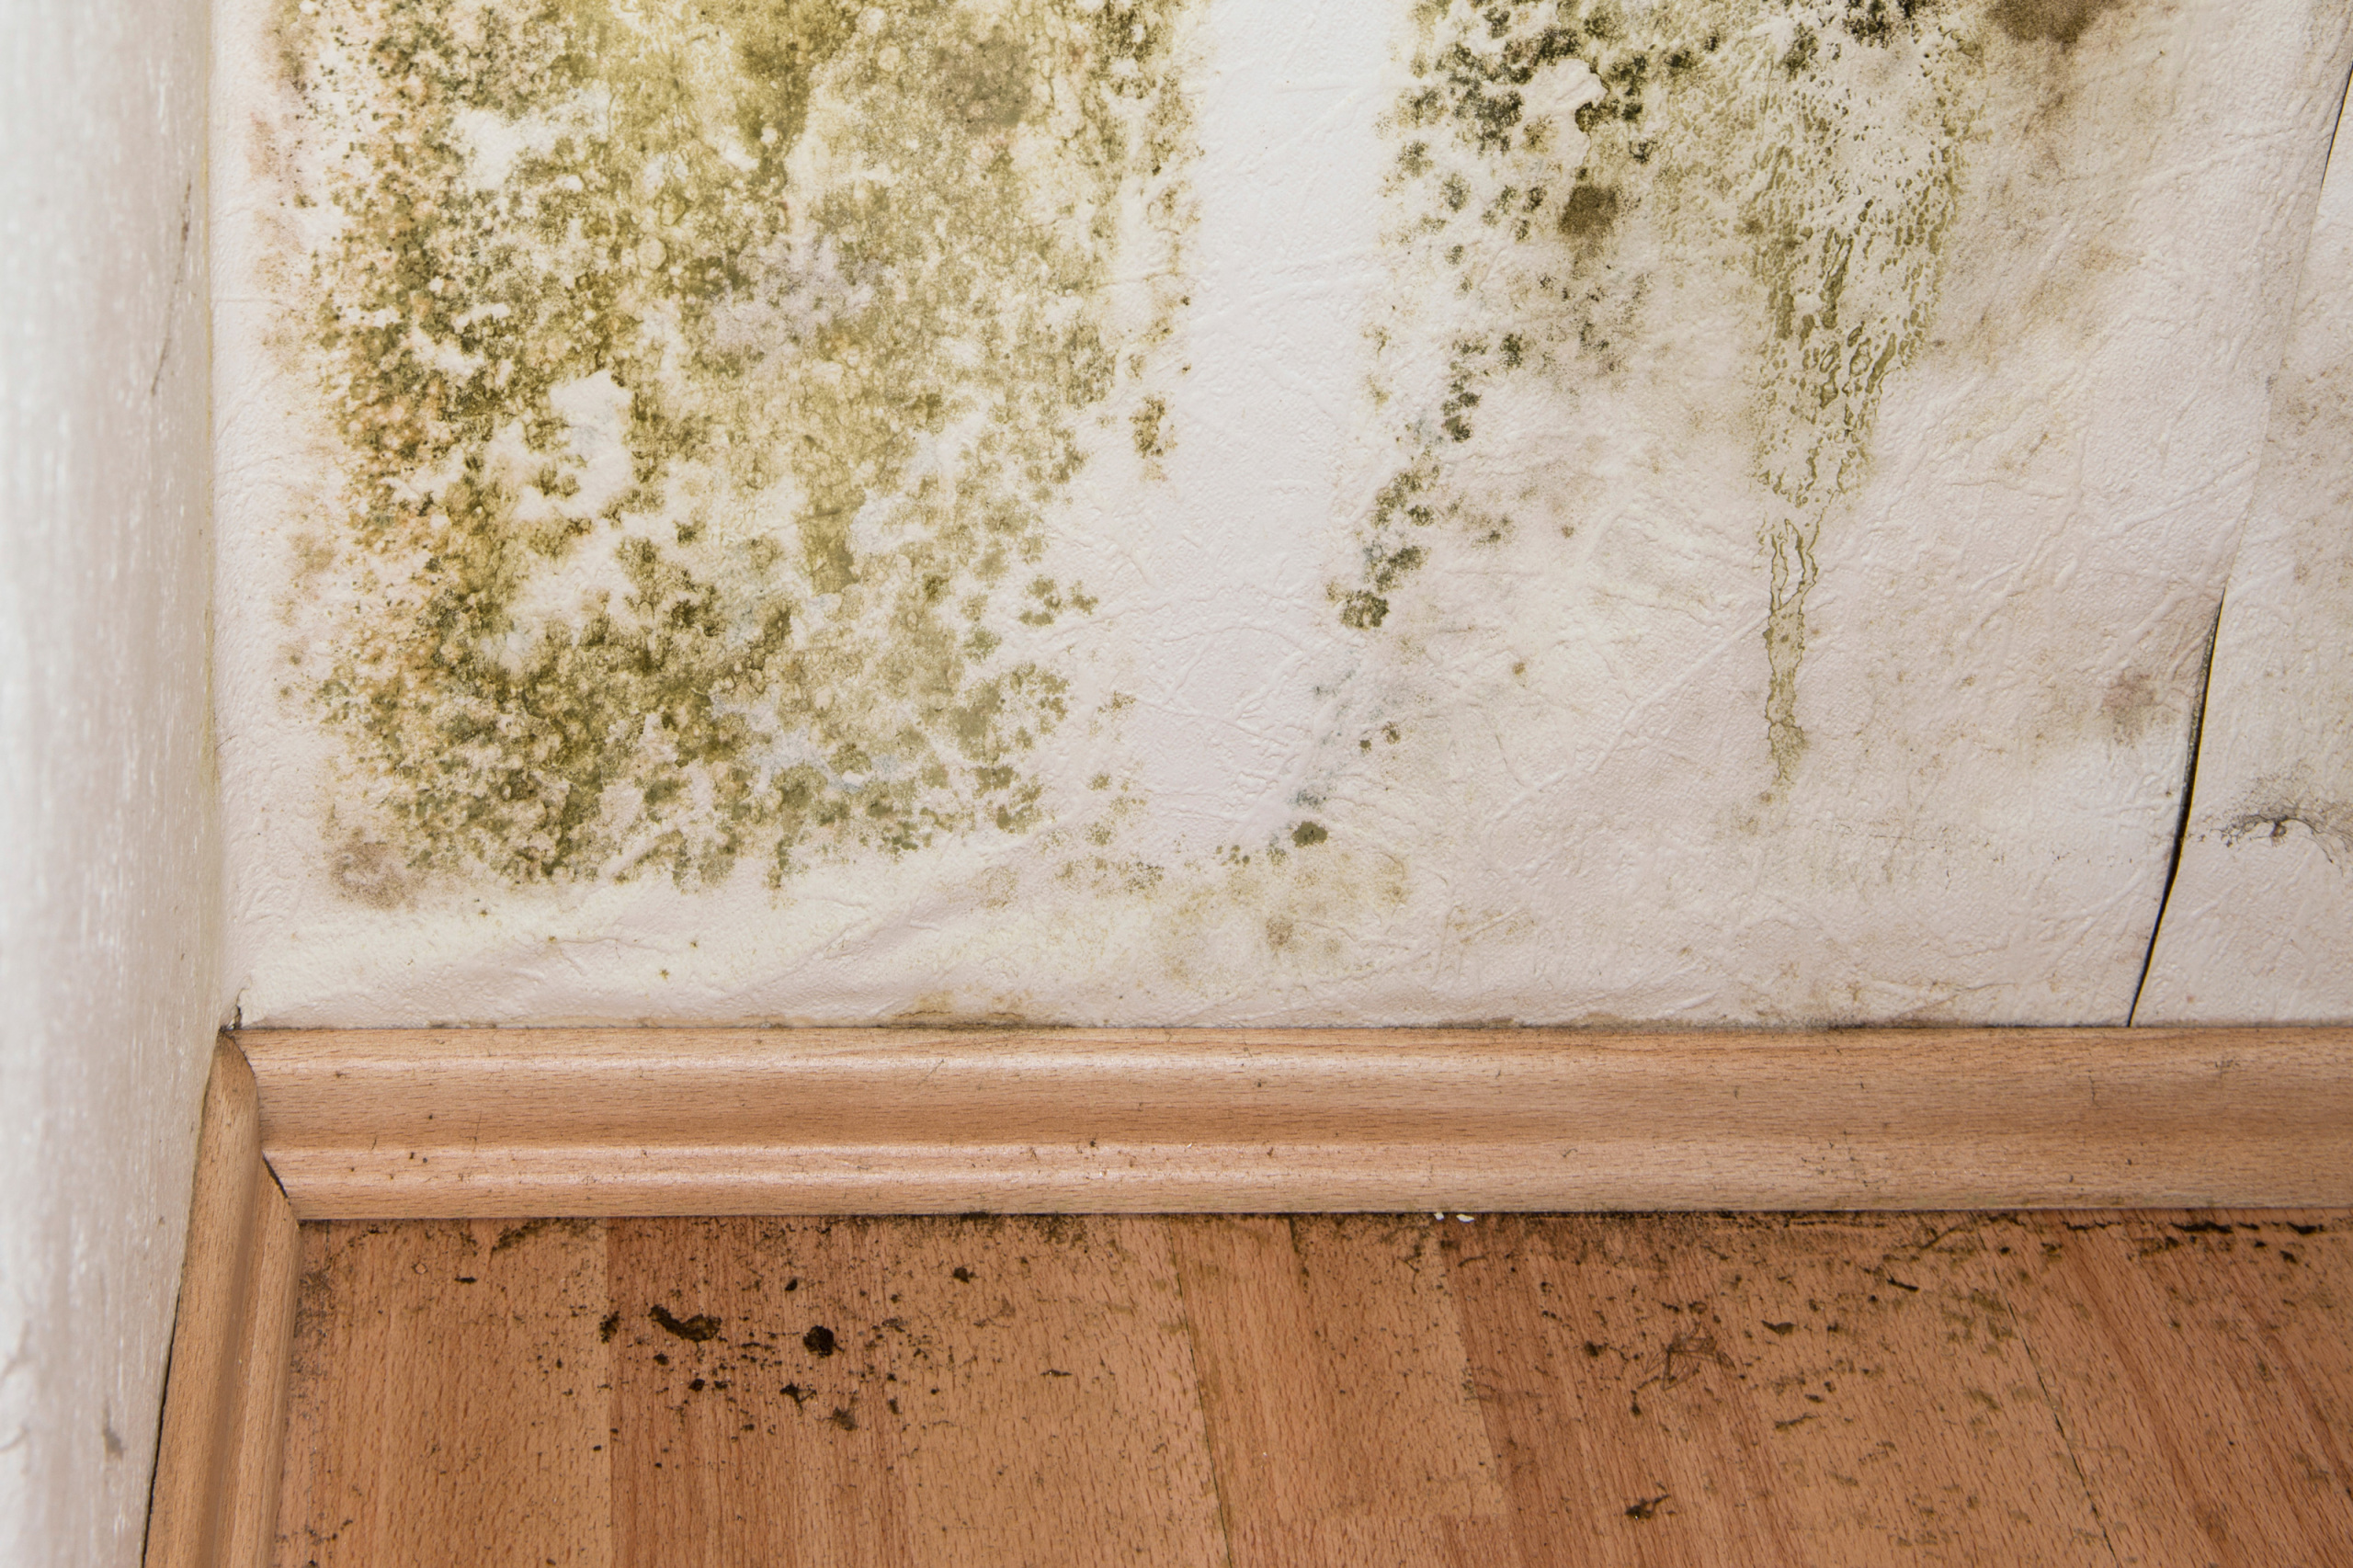 Determining Mold Infestations in your House